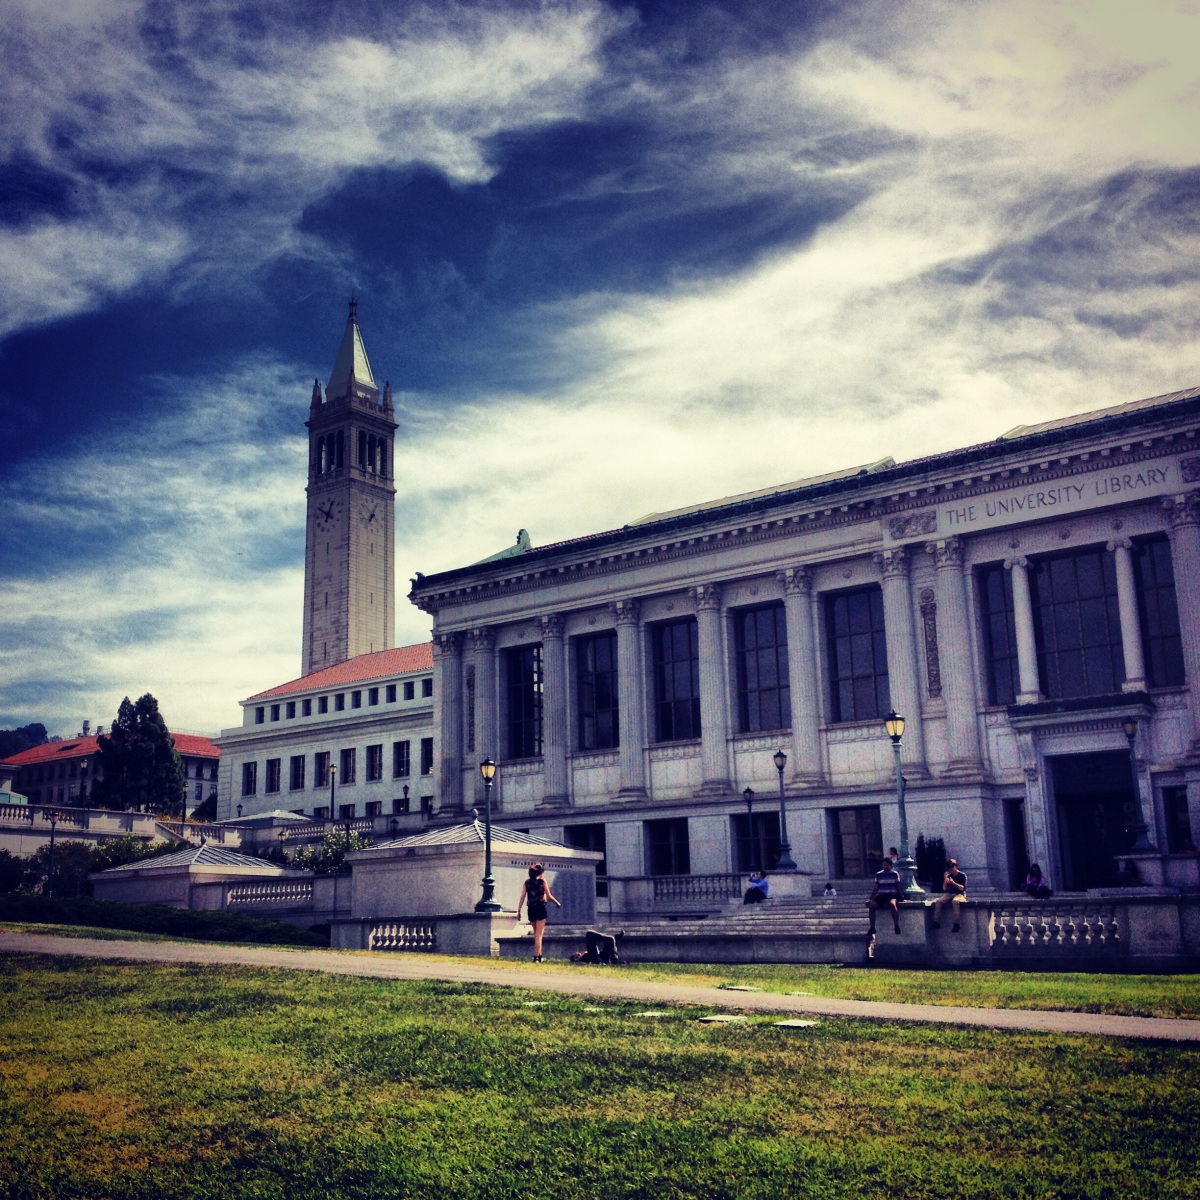 Uc berkeley transfer application essay